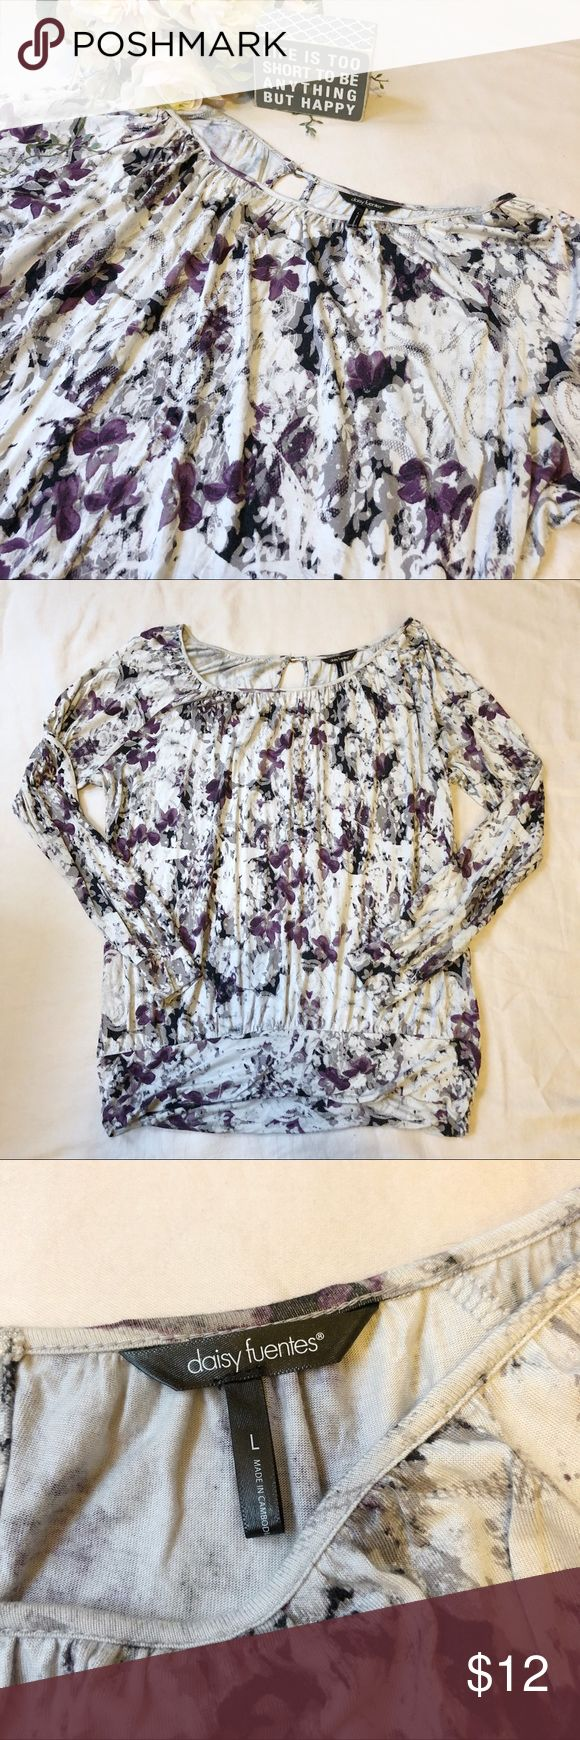 Daisy Fuentes Floral Long Sleeve Top Size L Daisy Fuentes floral long sleeve top. Banded hem with key hole closure in back. Purple florals on light grey background. EUC.   Make me an offer!! 😊 Daisy Fuentes Tops Blouses